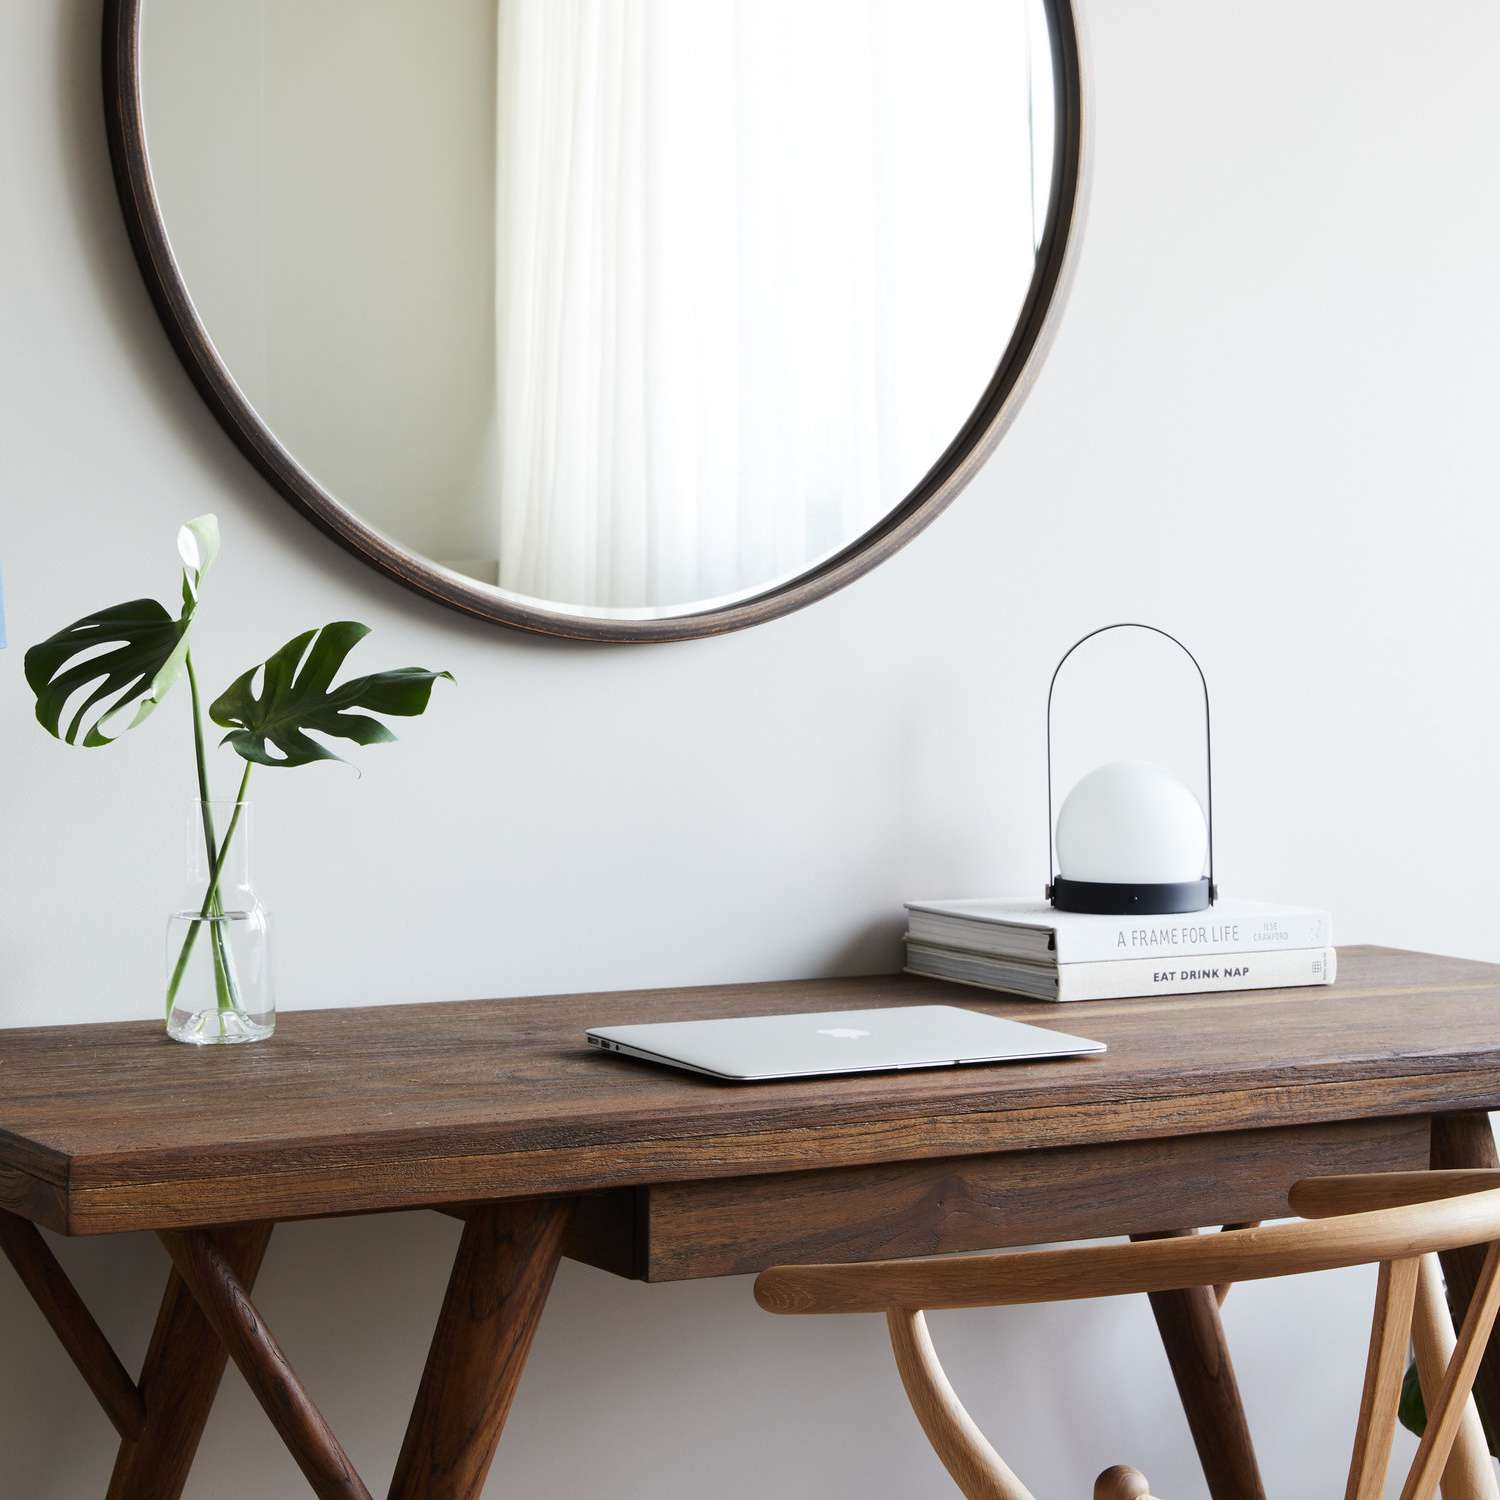 A classic midcentury modern desk, paired with an equally classic midcentury modern wishbone chair